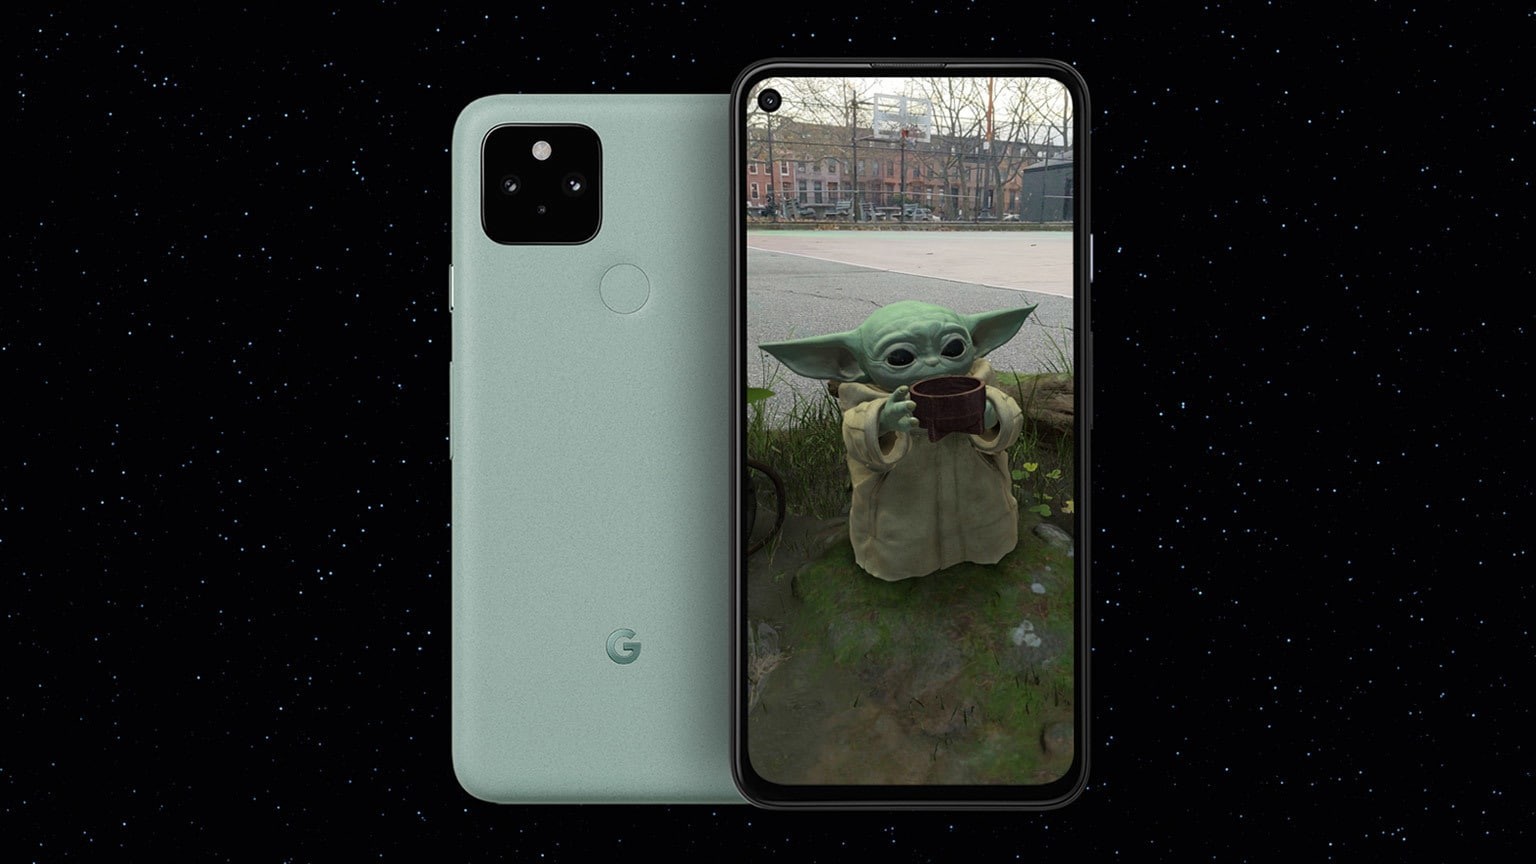 Mando and the Child Come Home (Literally) in New AR Experience App